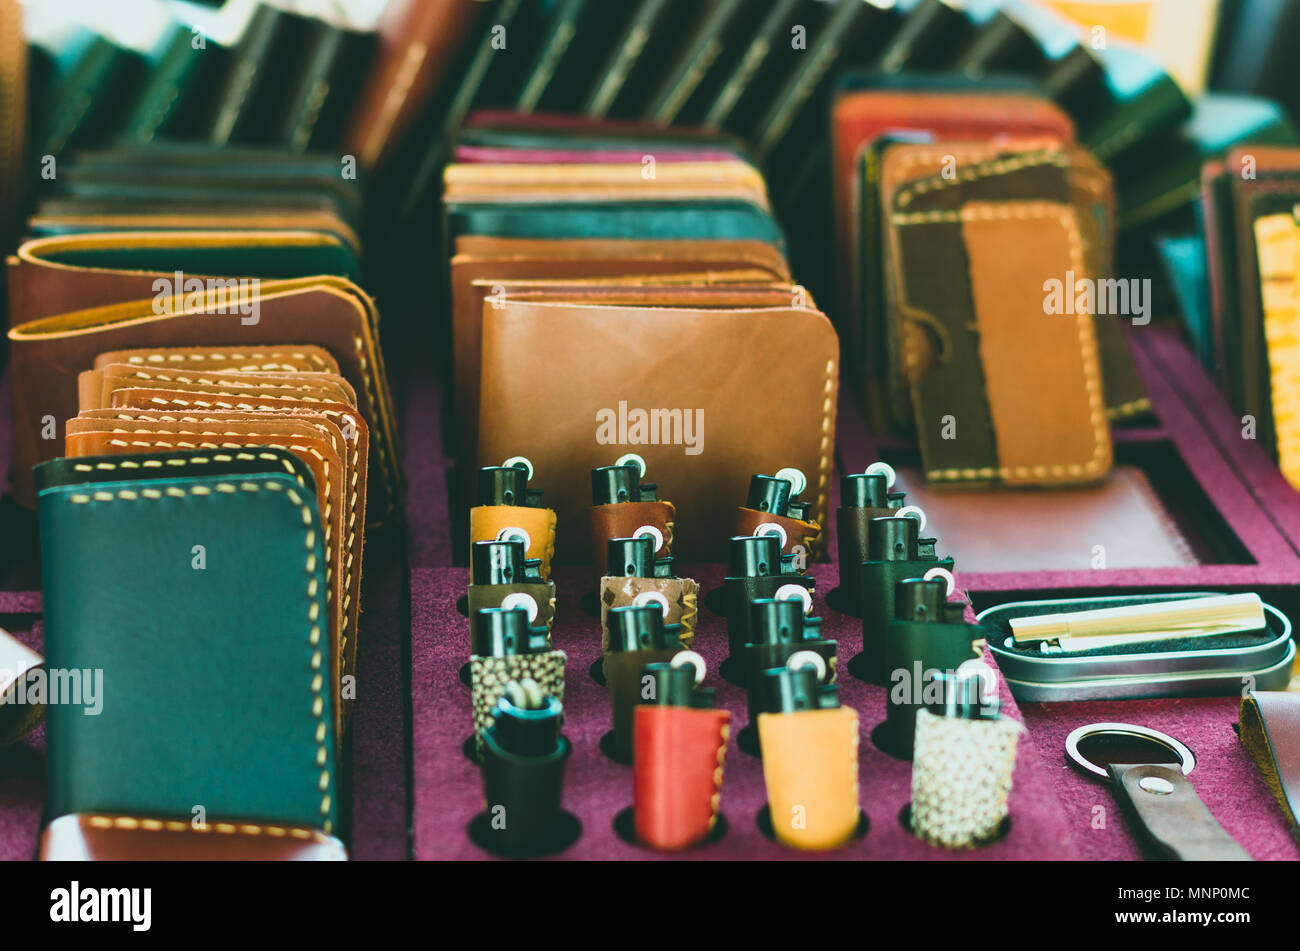 Colorful stack of leather lighters and wallets - Stock Image